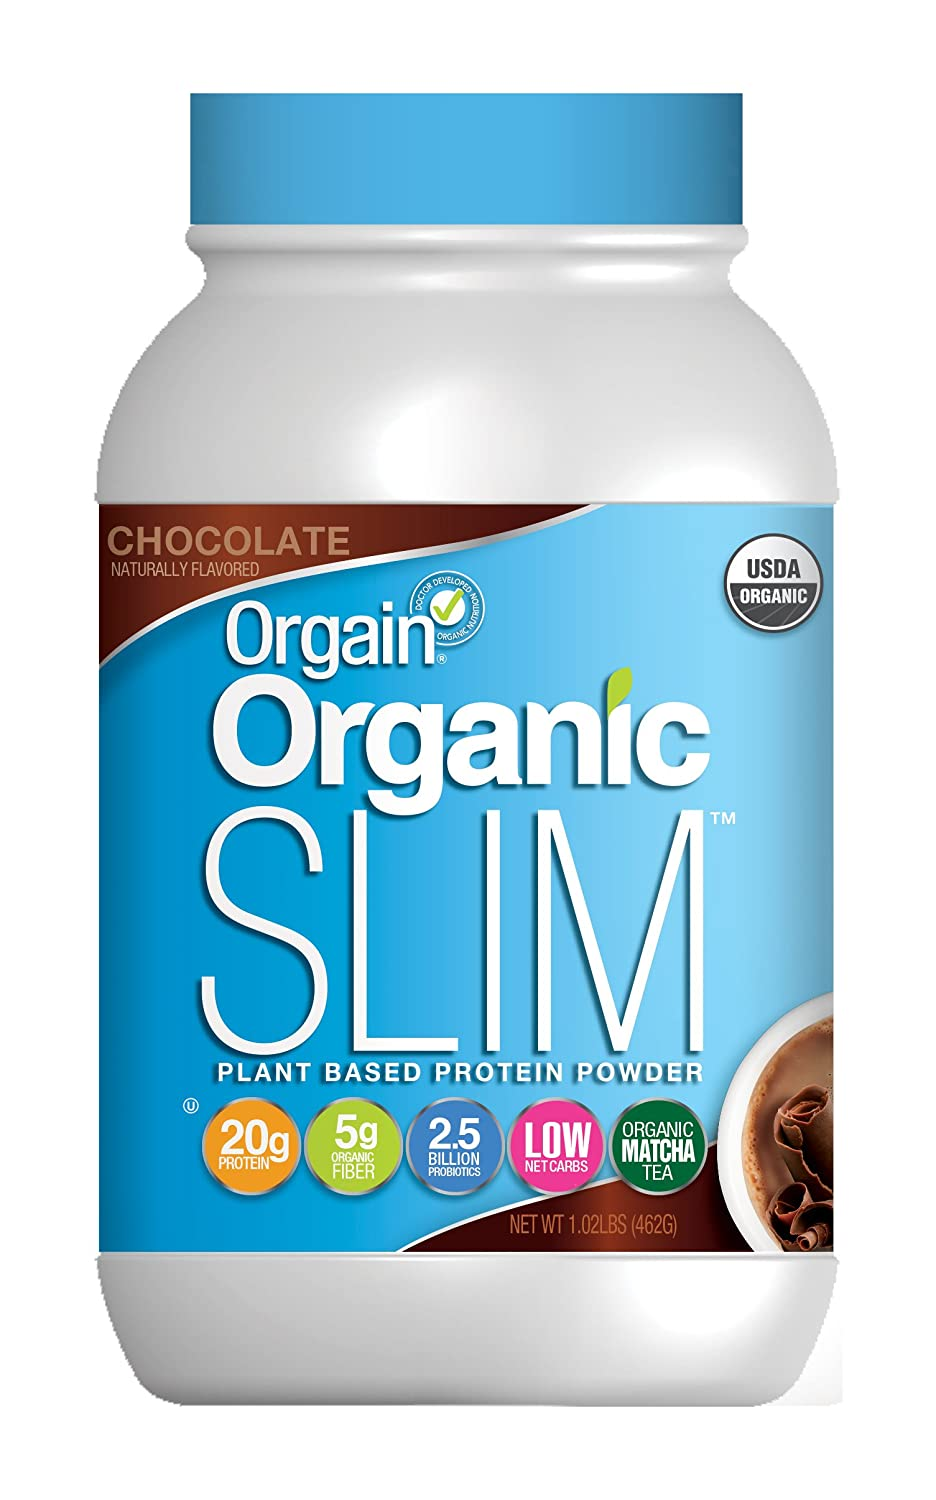 Orgain Organic Slim Weight Loss Powder, Chocolate, 1.02 Pound, 1 Count